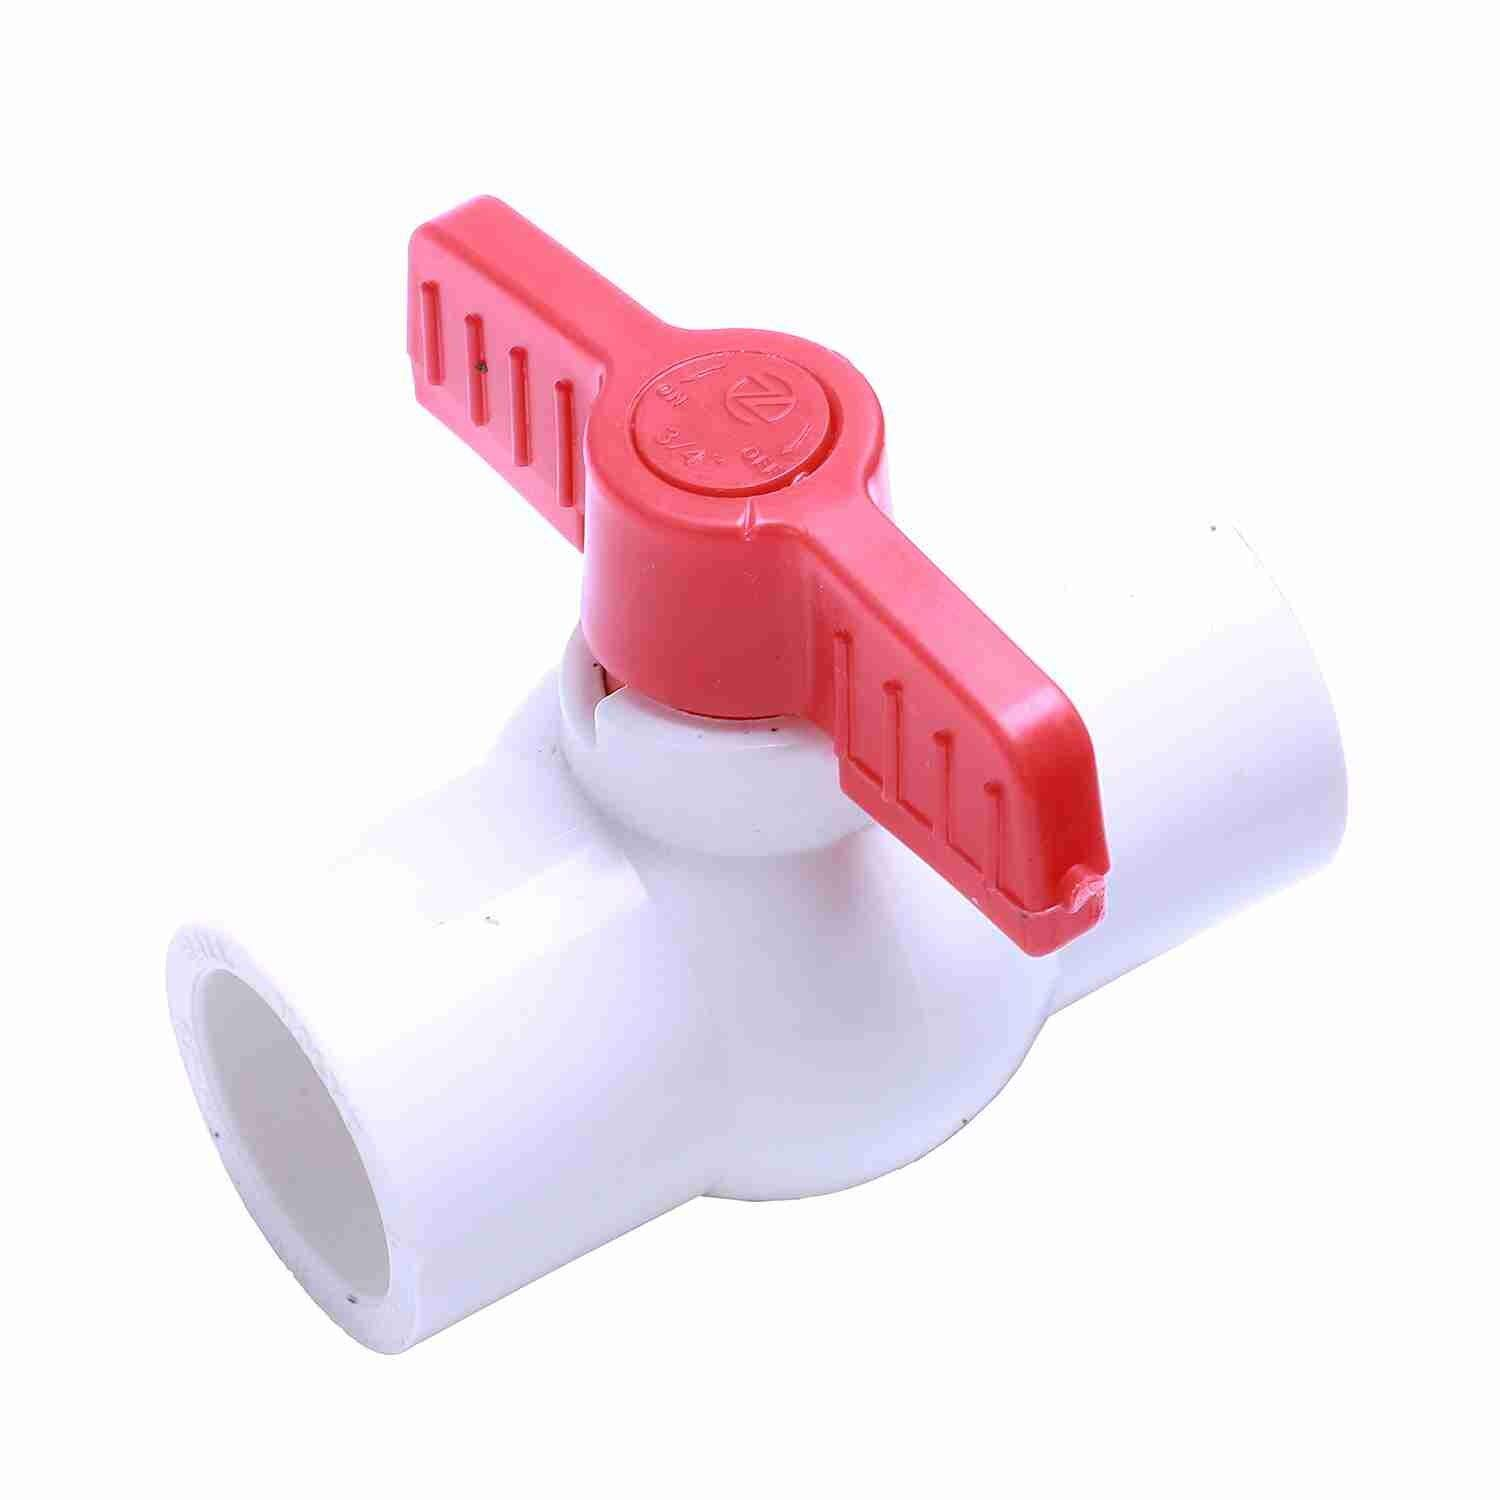 25mm x 25mm Red Handle Double Ports White PVC Pipe Connect Ball Valve